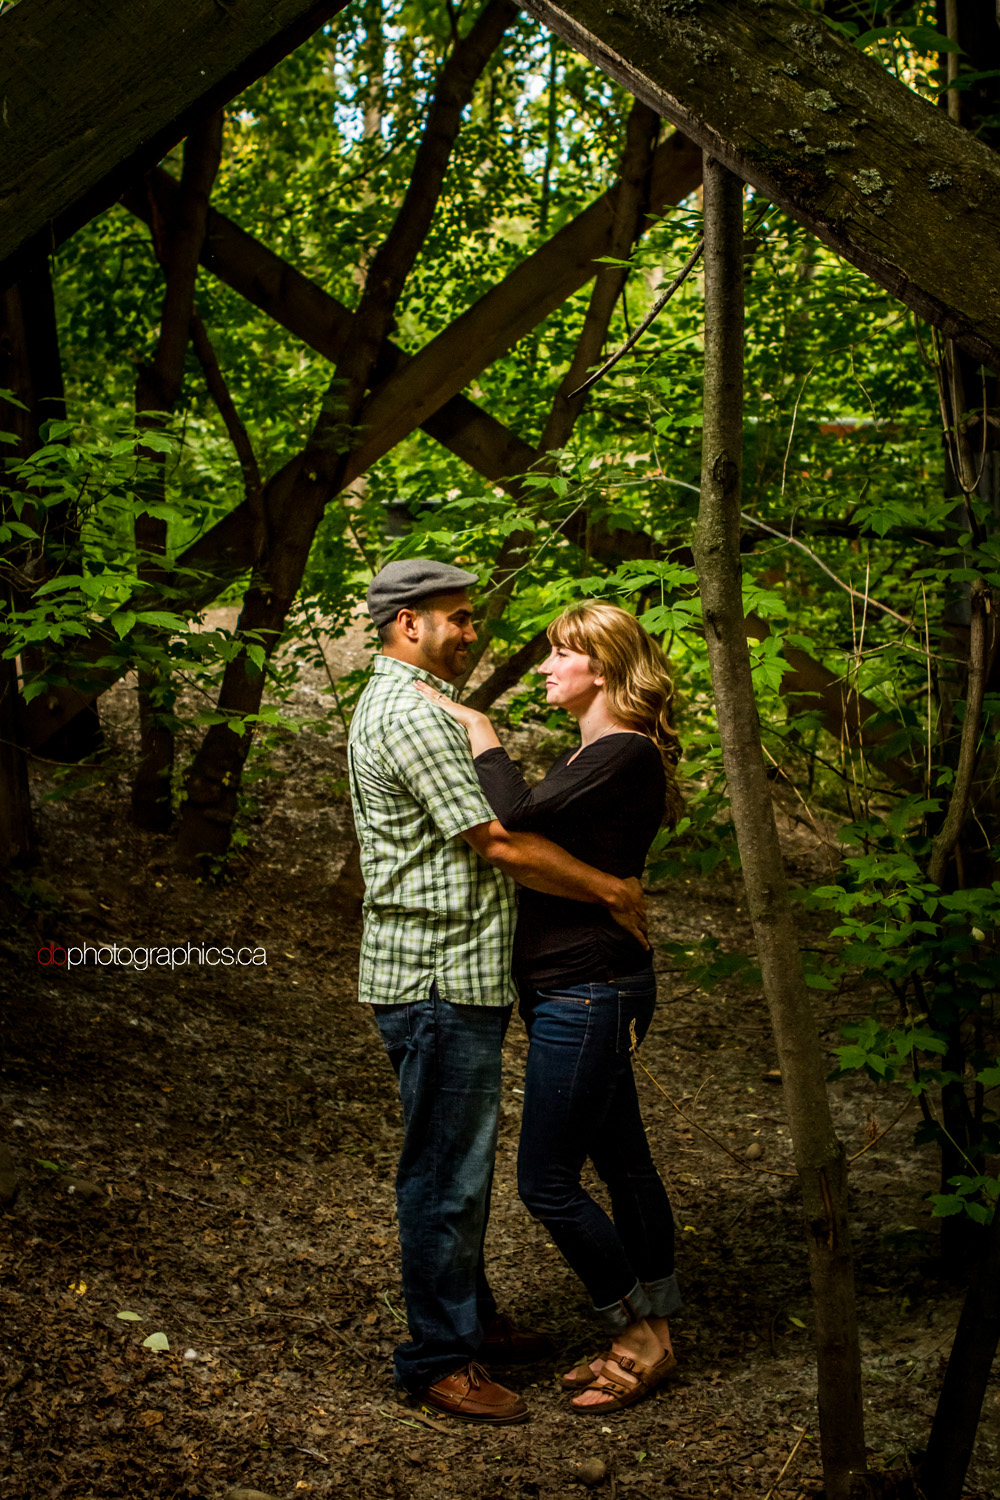 Amy & Ian Engagement Shoot - 20140626 - 0060.jpg